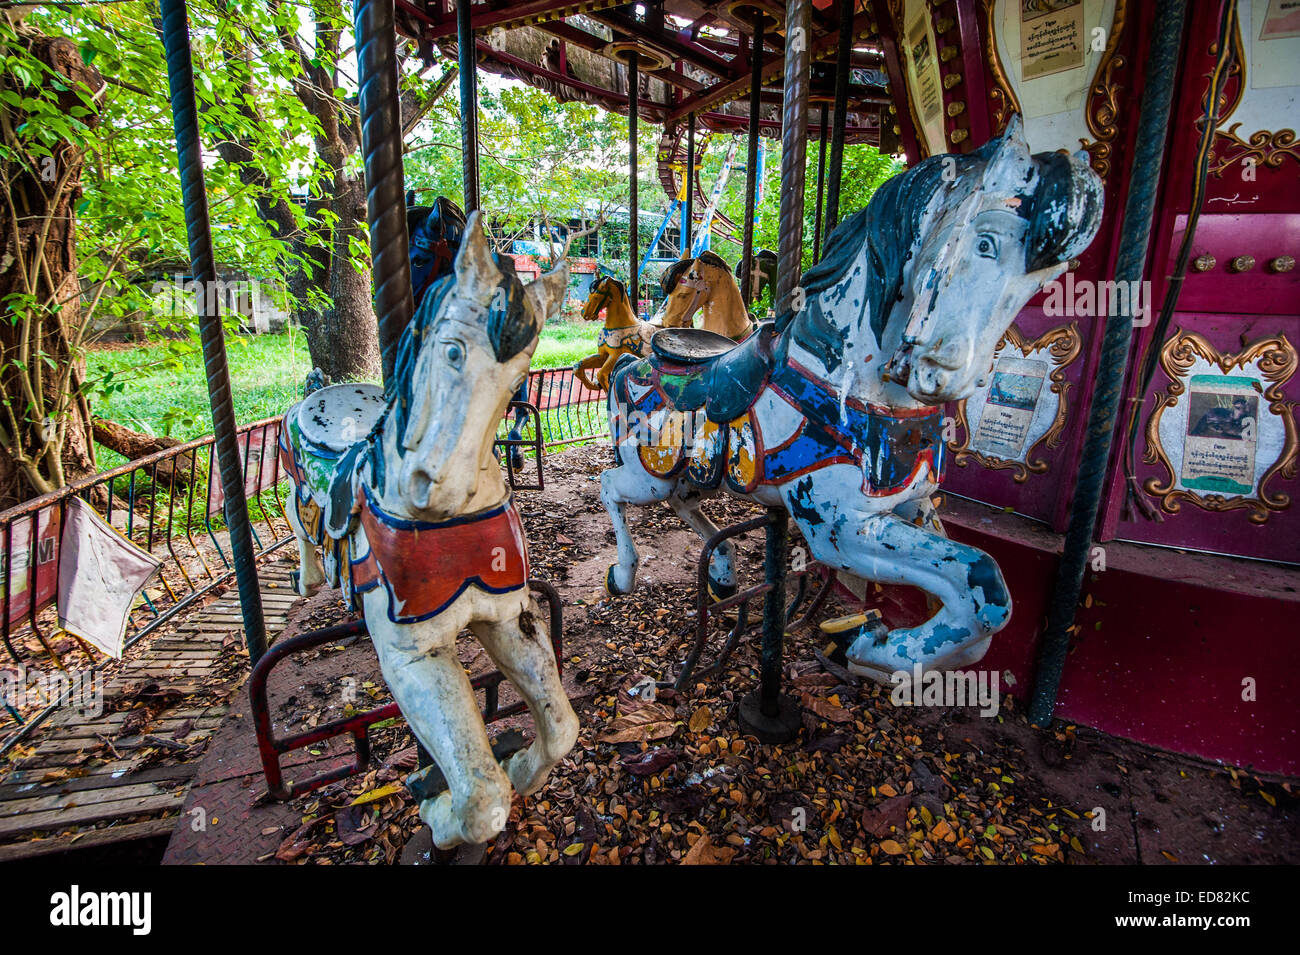 Decaying horses on carousel, at abandoned amusement park in Yangon Stock Photo